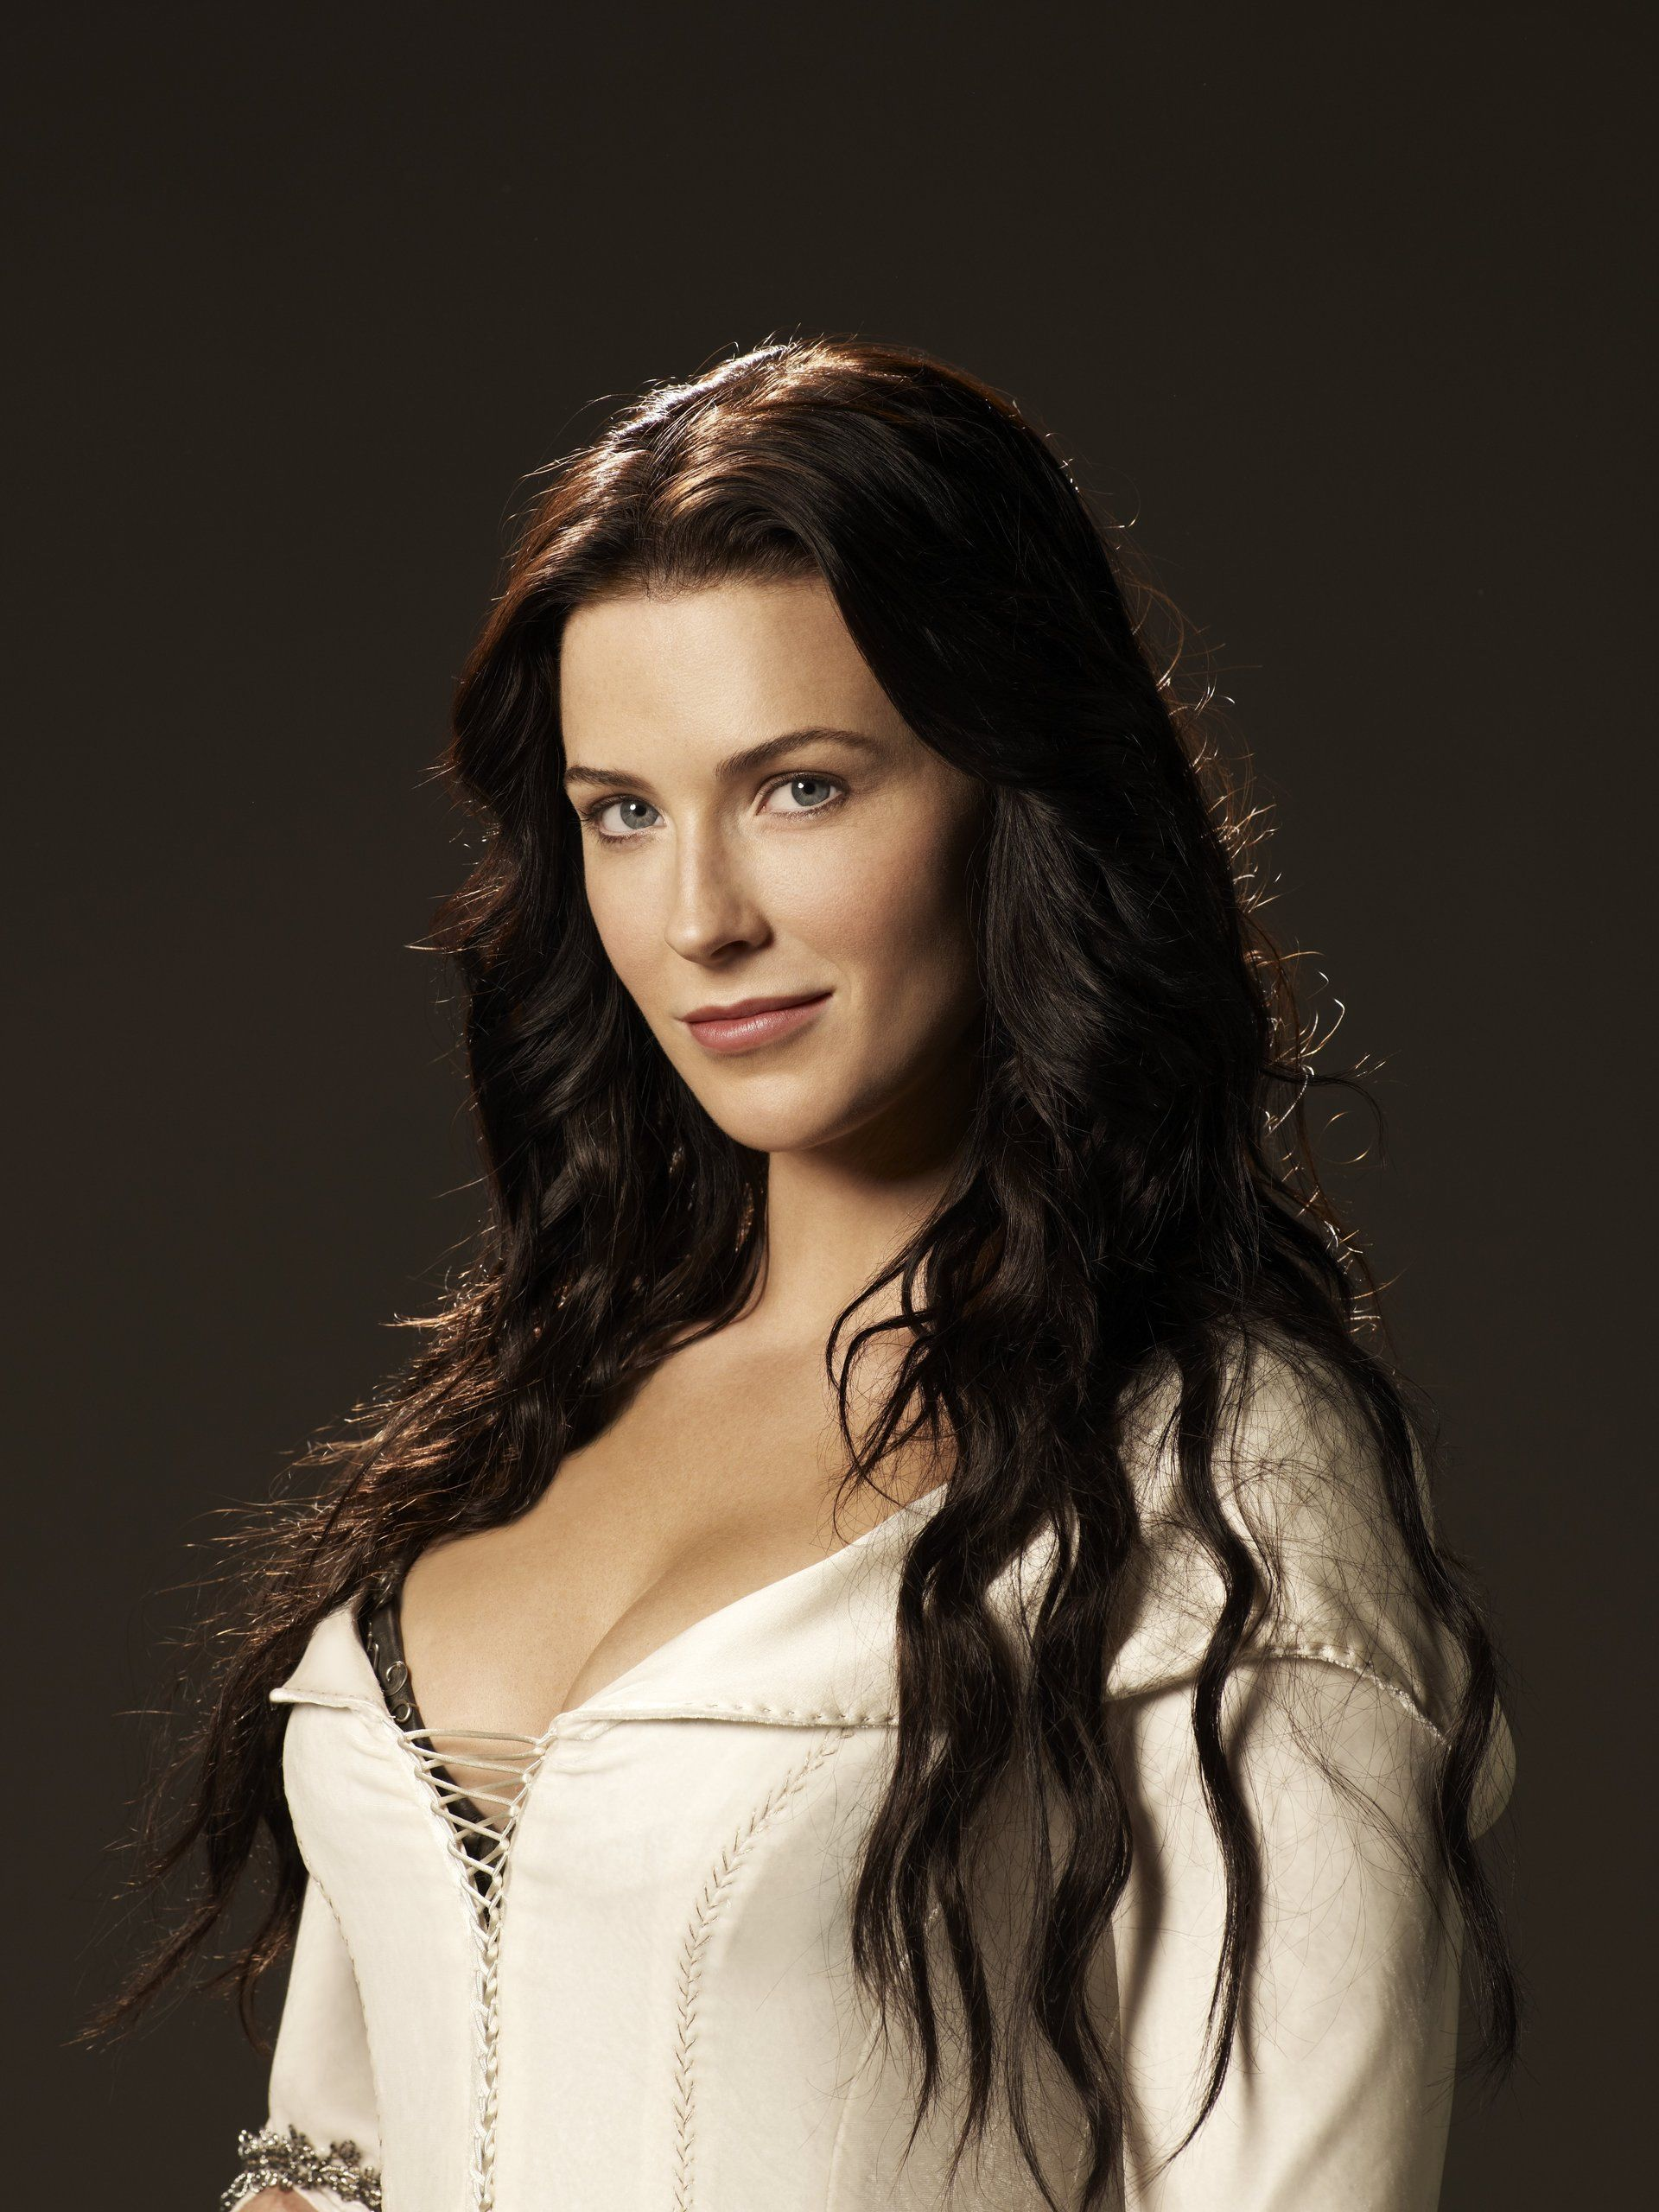 Bridget Regan damm hot